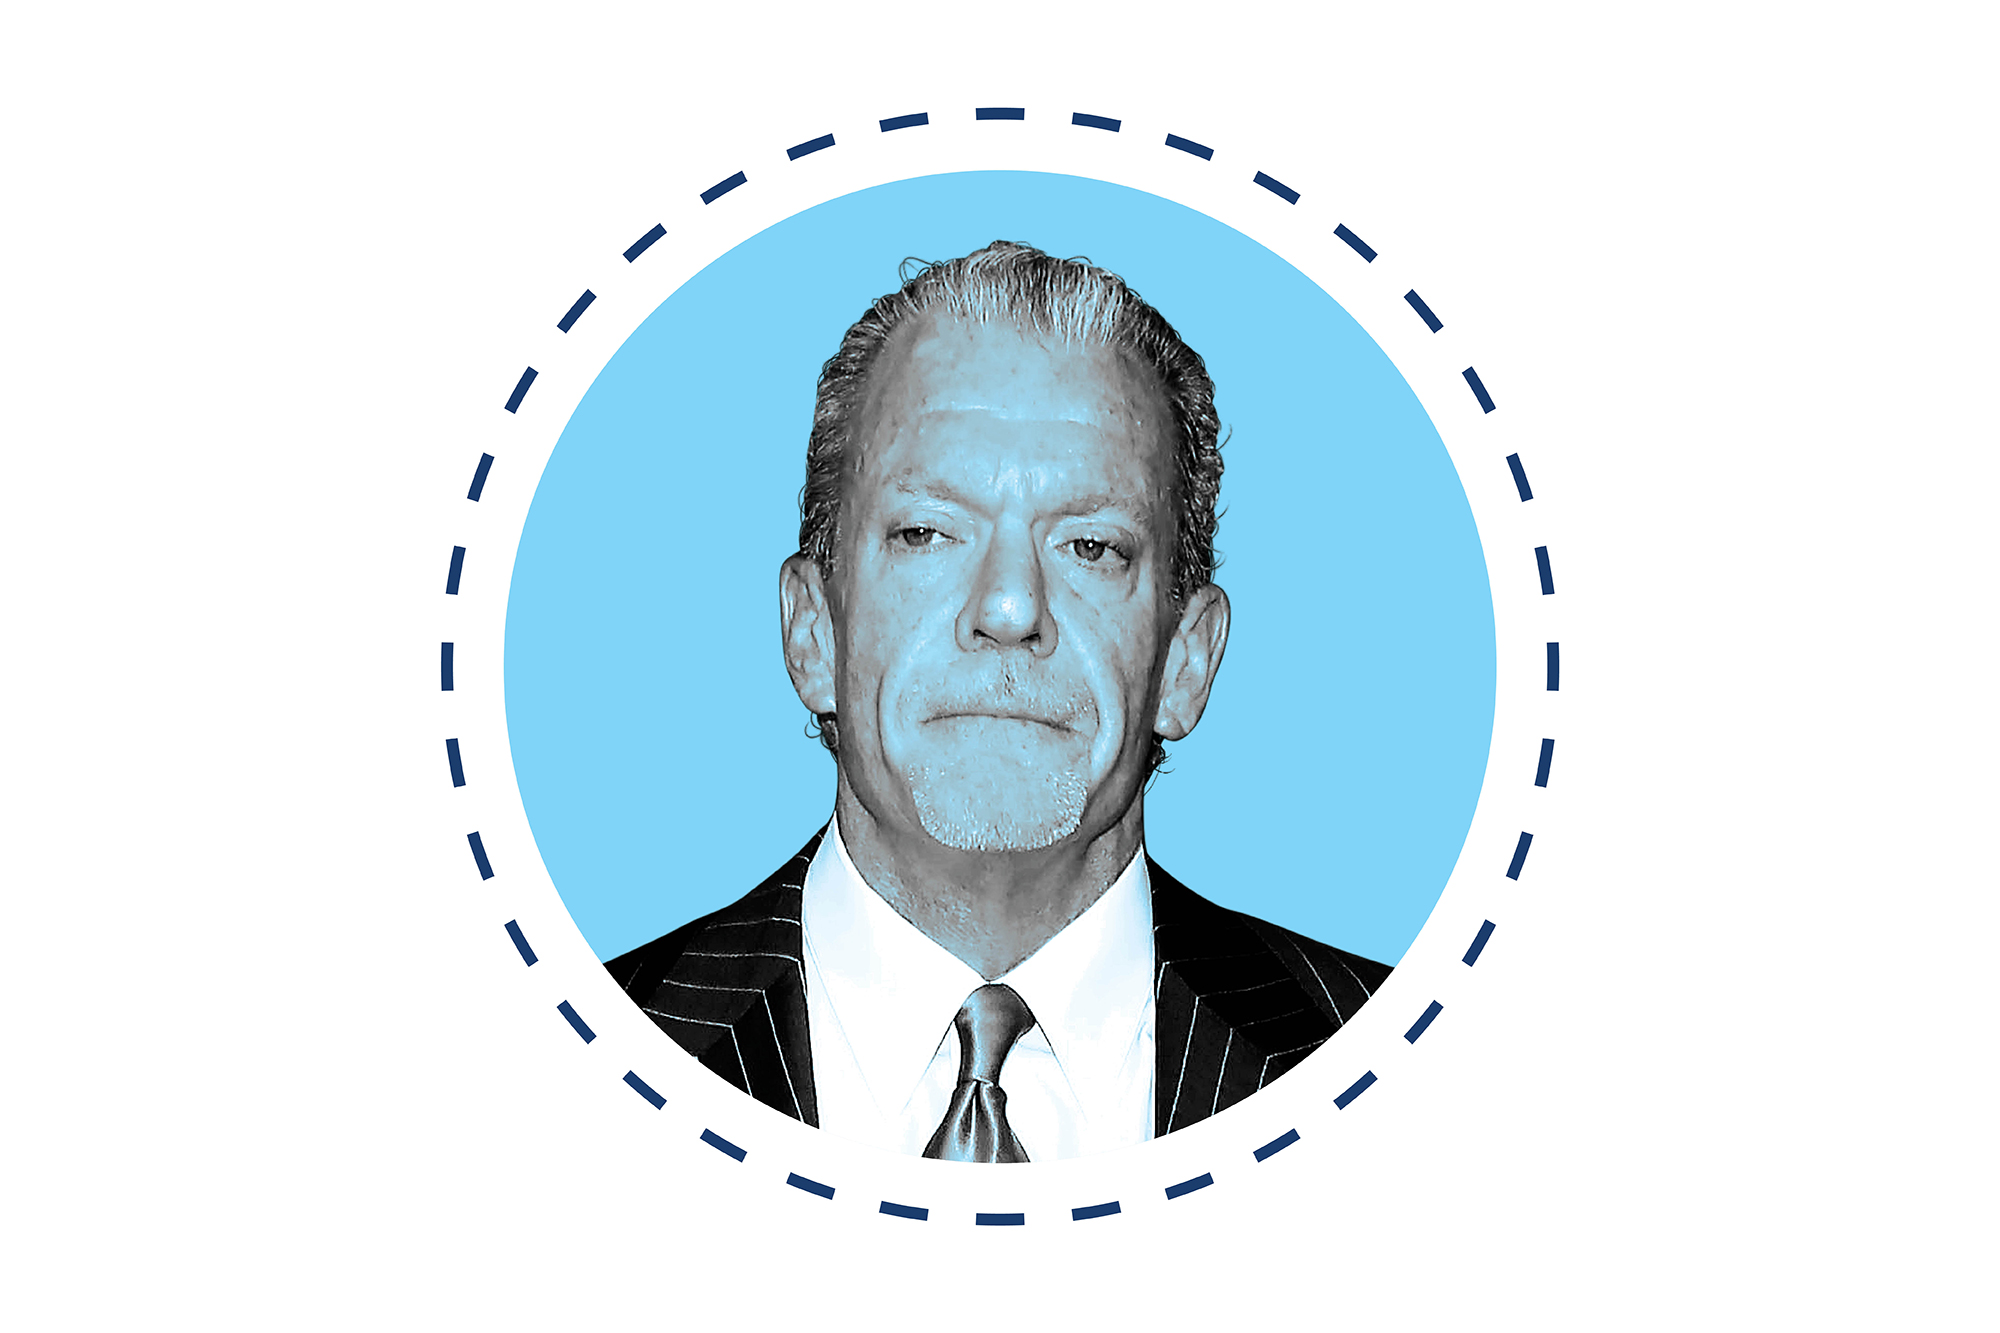 Indianapolis Colts Owner: Jim Irsay net worth, political donations